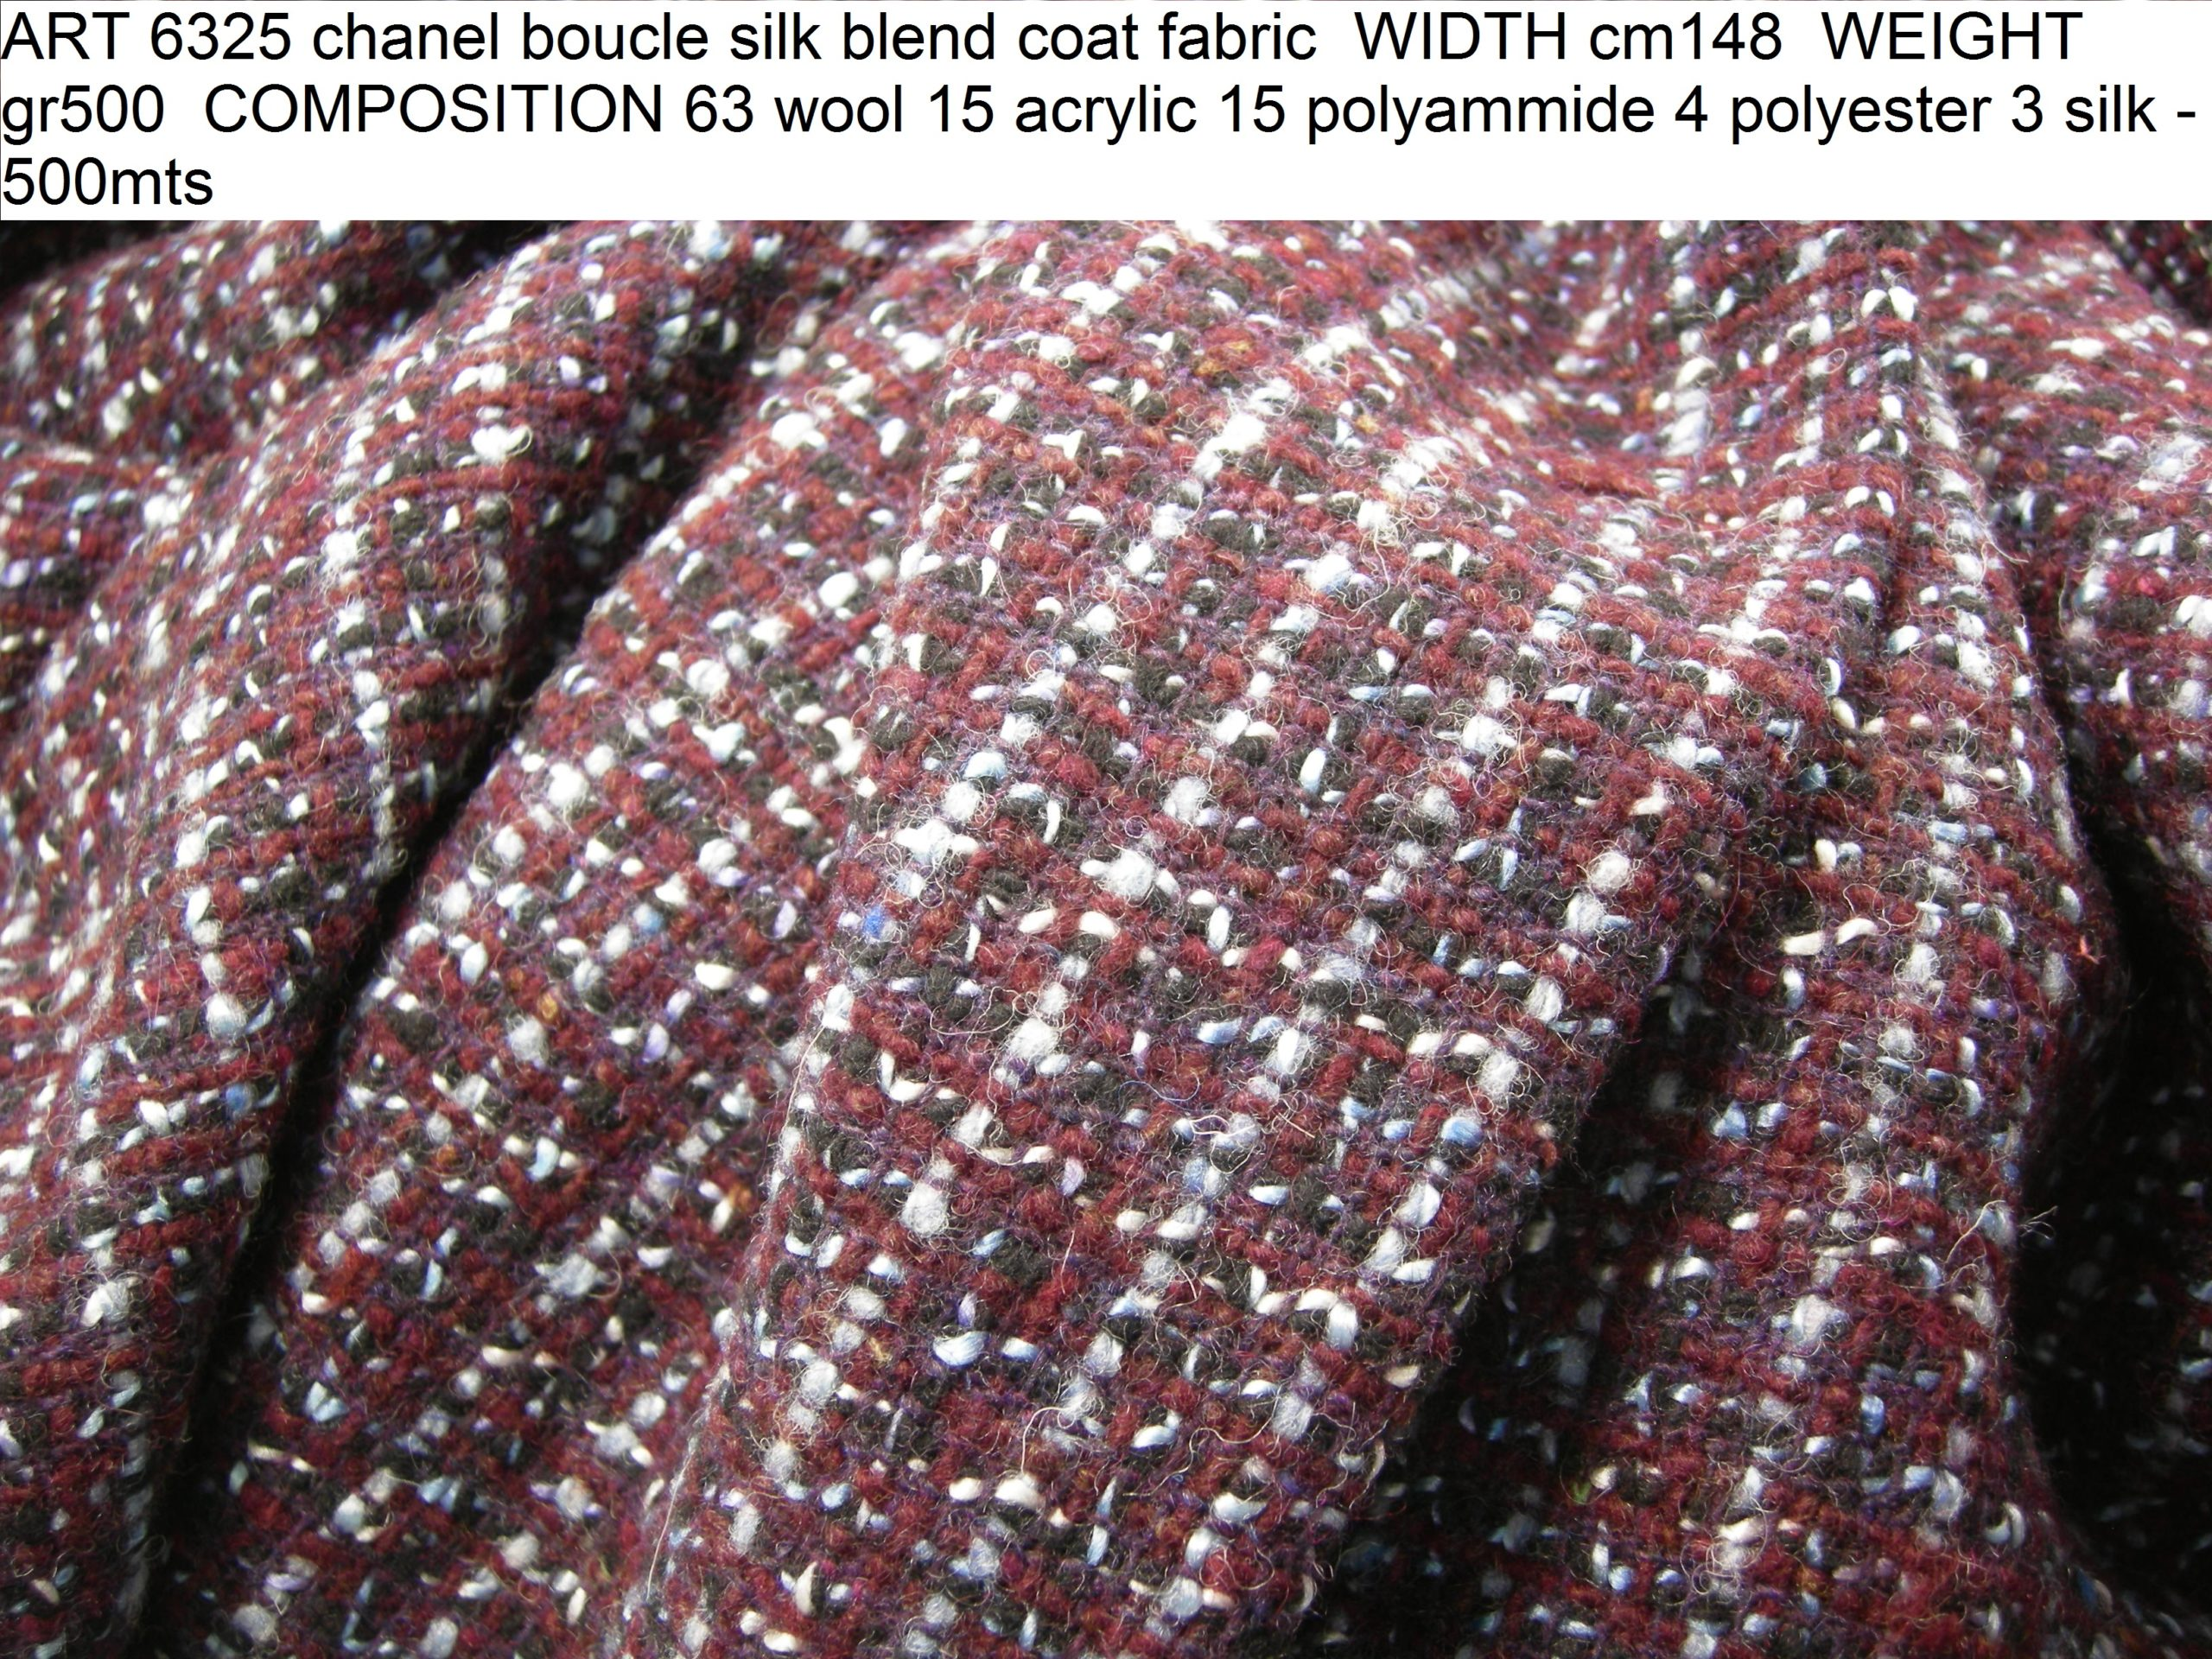 ART 6325 chanel boucle silk blend coat fabric WIDTH cm148 WEIGHT gr500 COMPOSITION 63 wool 15 acrylic 15 polyammide 4 polyester 3 silk - 500mts